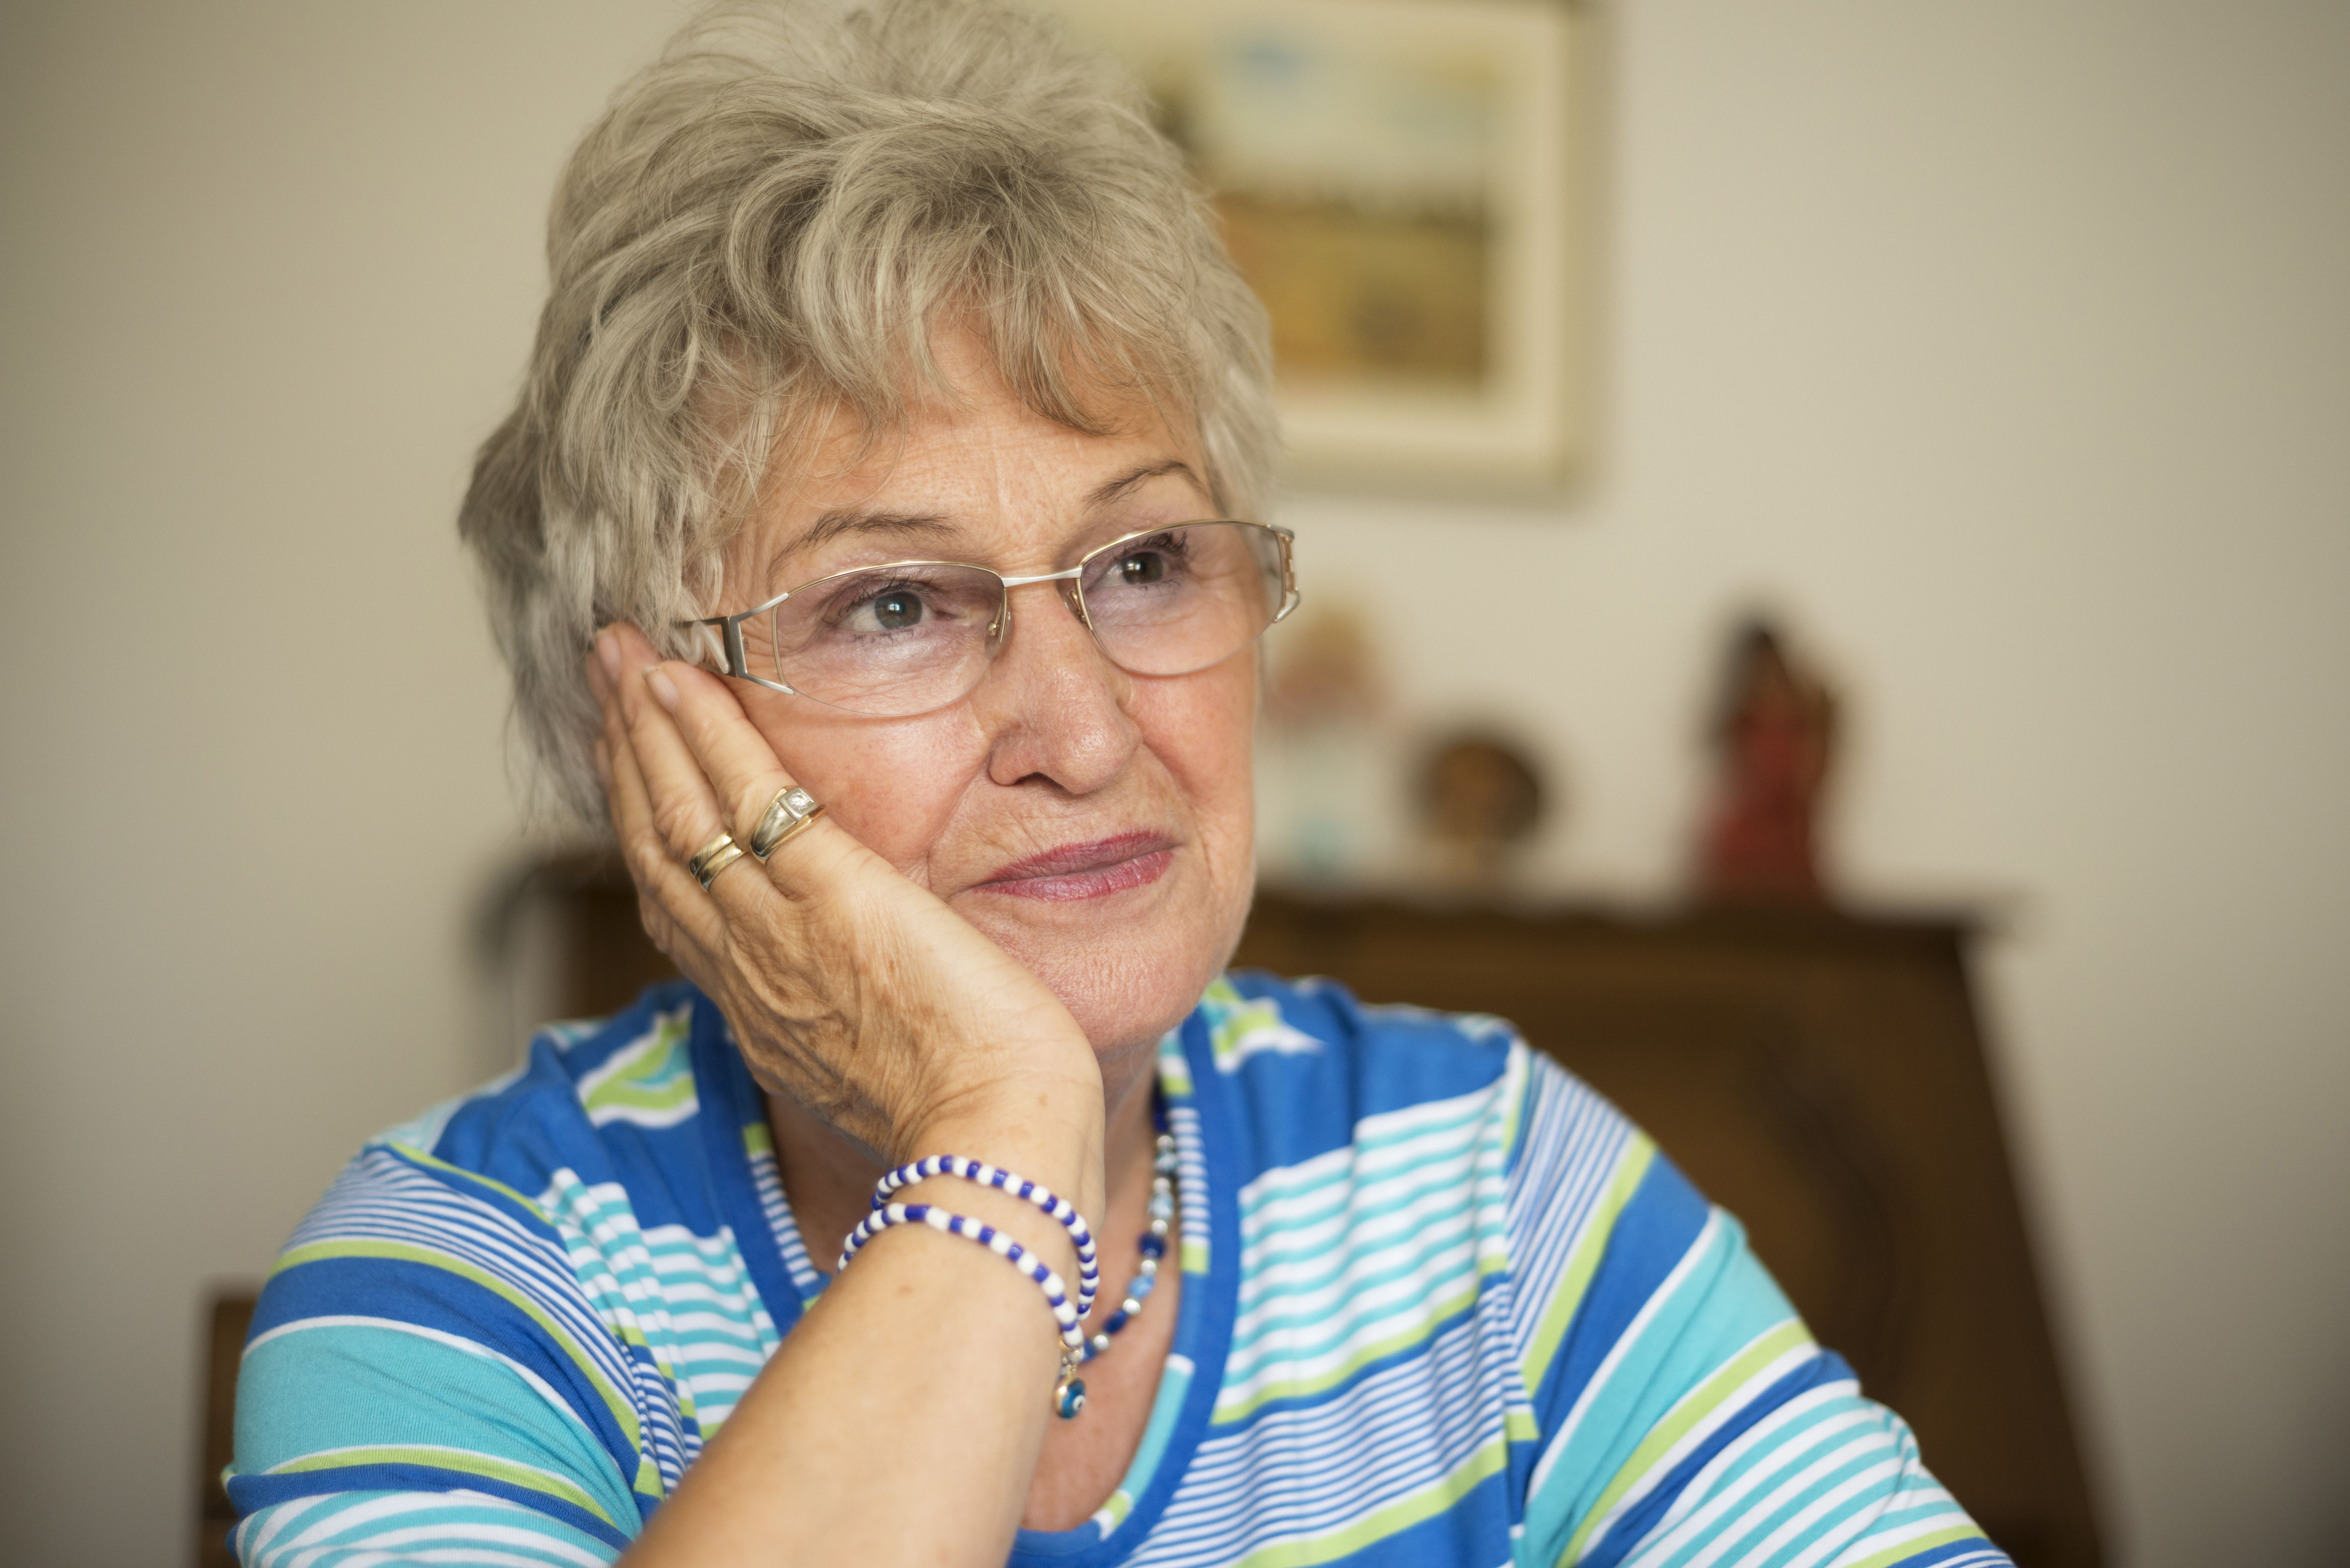 Portrait of senior woman daydreaming in living room